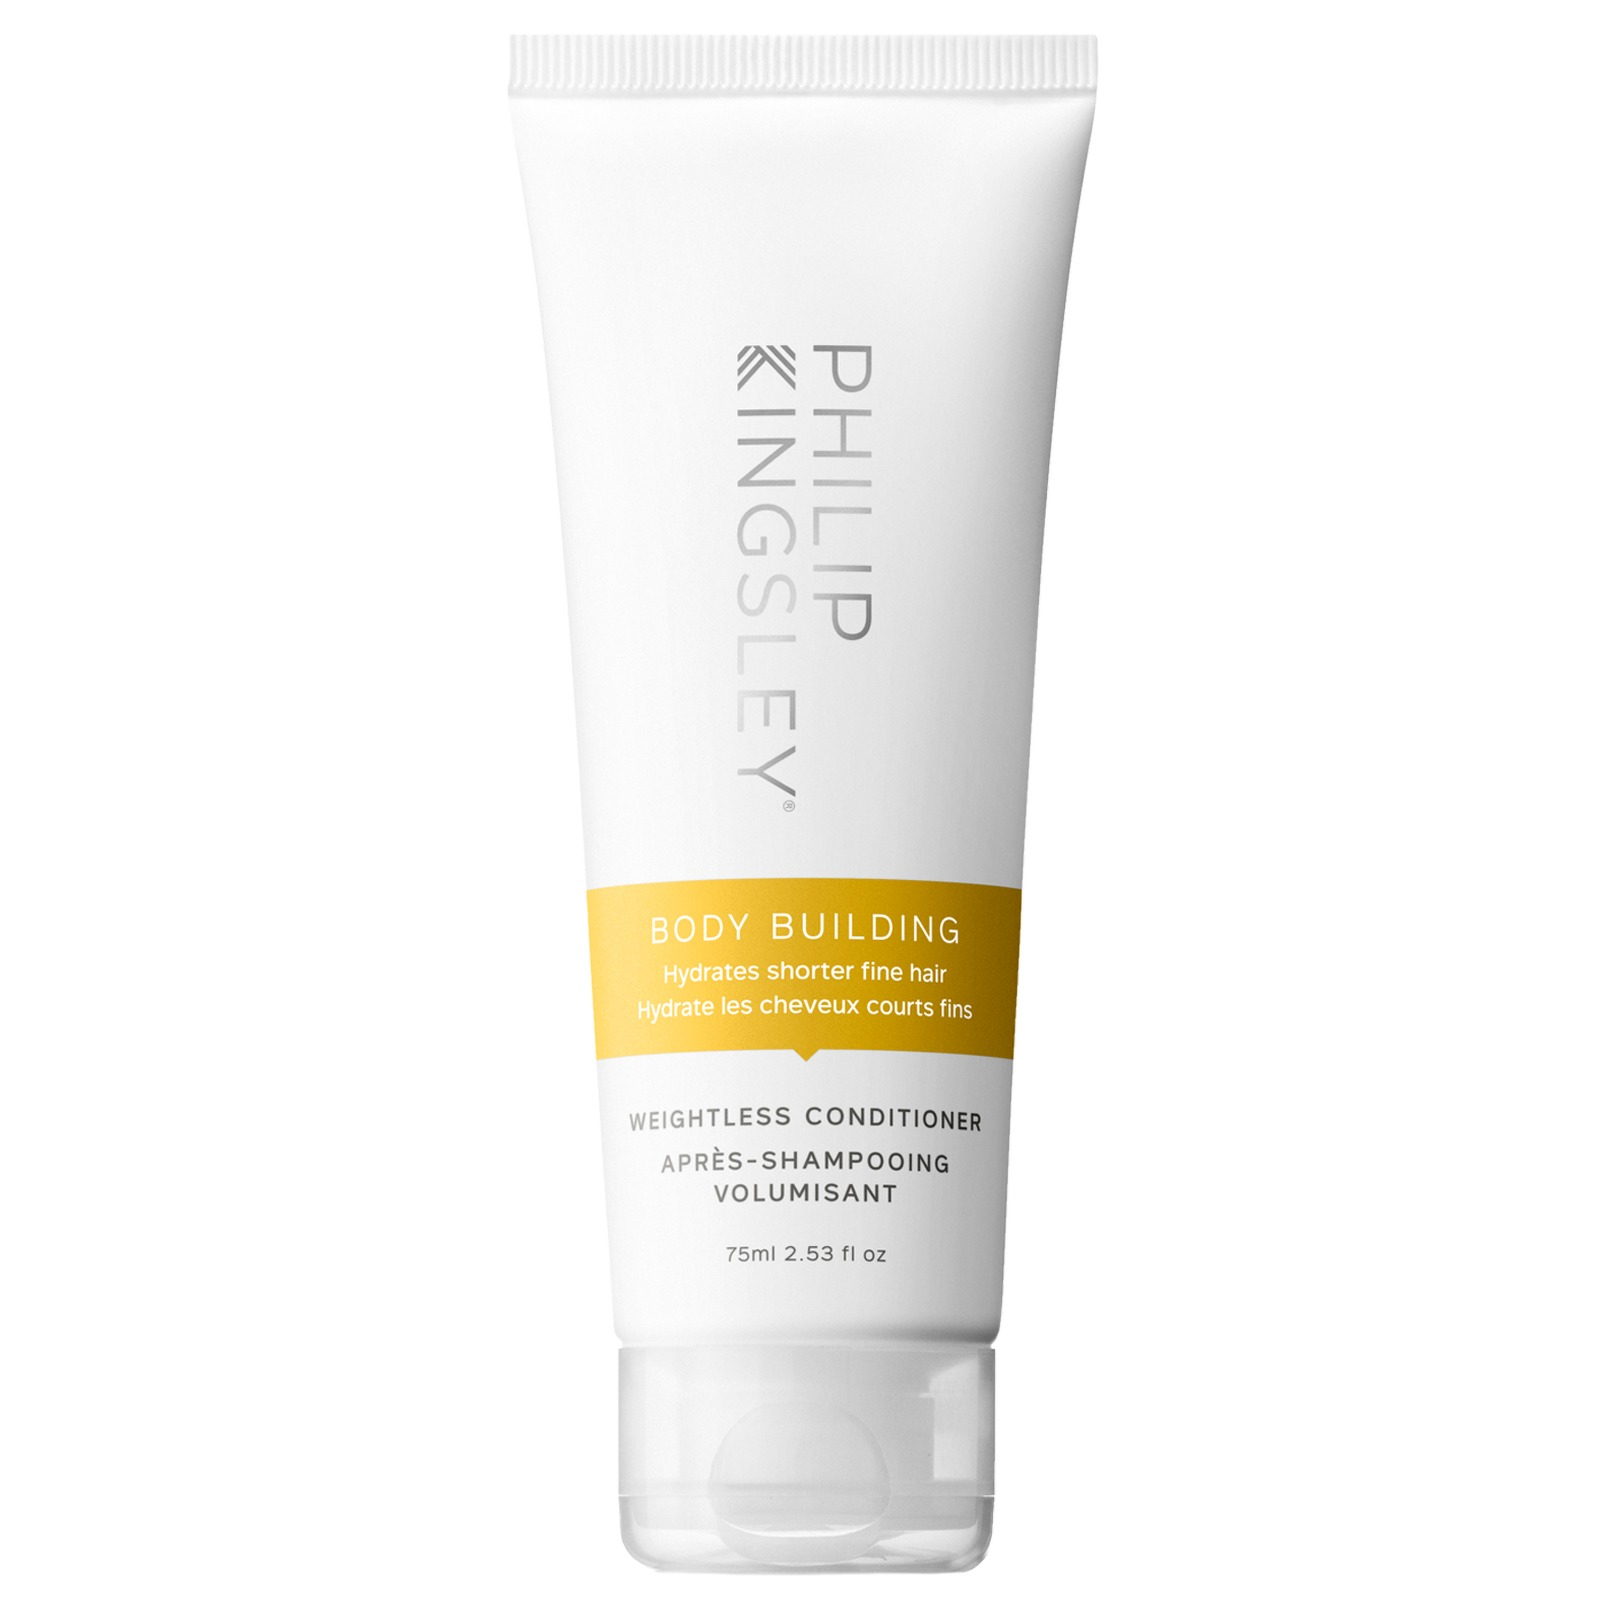 Philip Kingsley Conditioner Body Building Weightless Conditioner 75ml